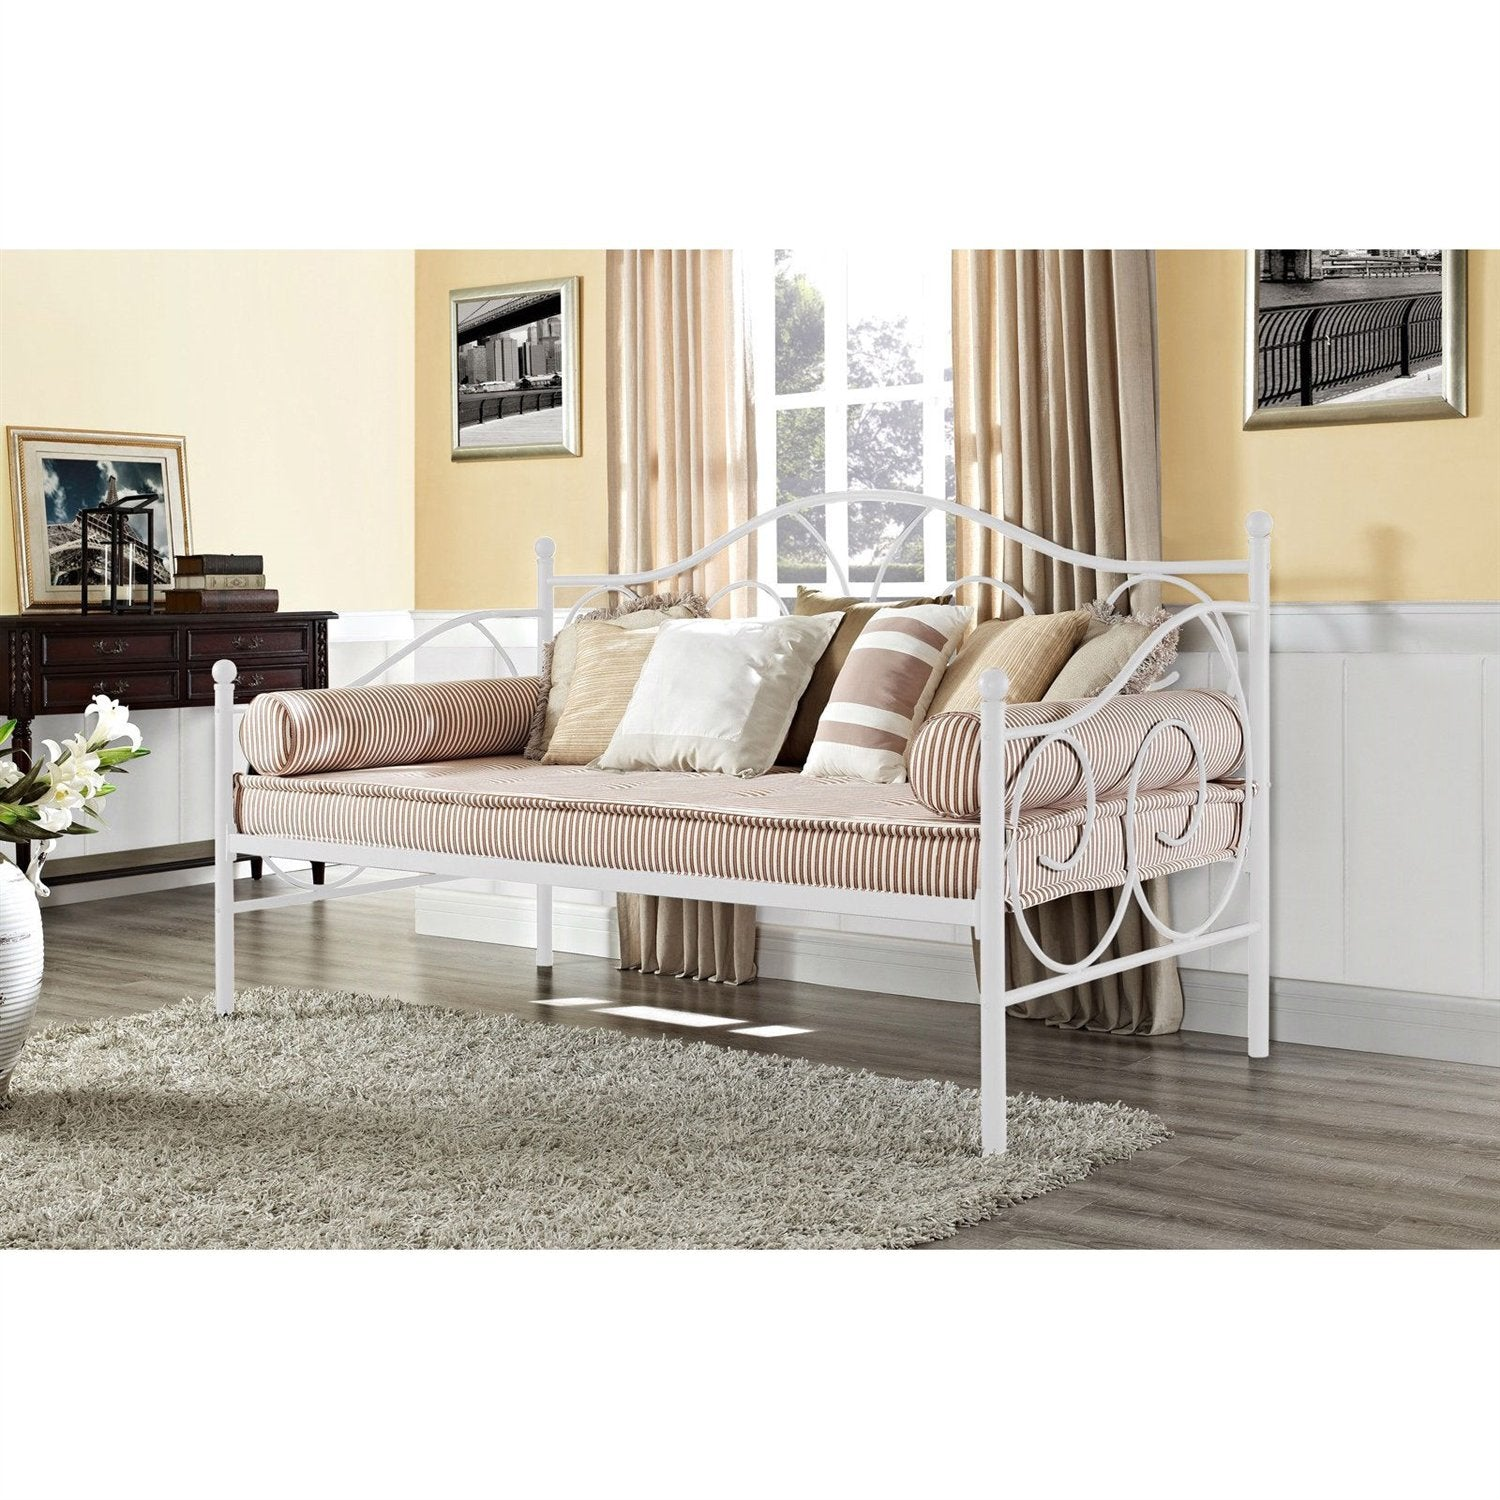 Twin size White Metal Daybed with Scrolling Final Detailing Heavy Duty